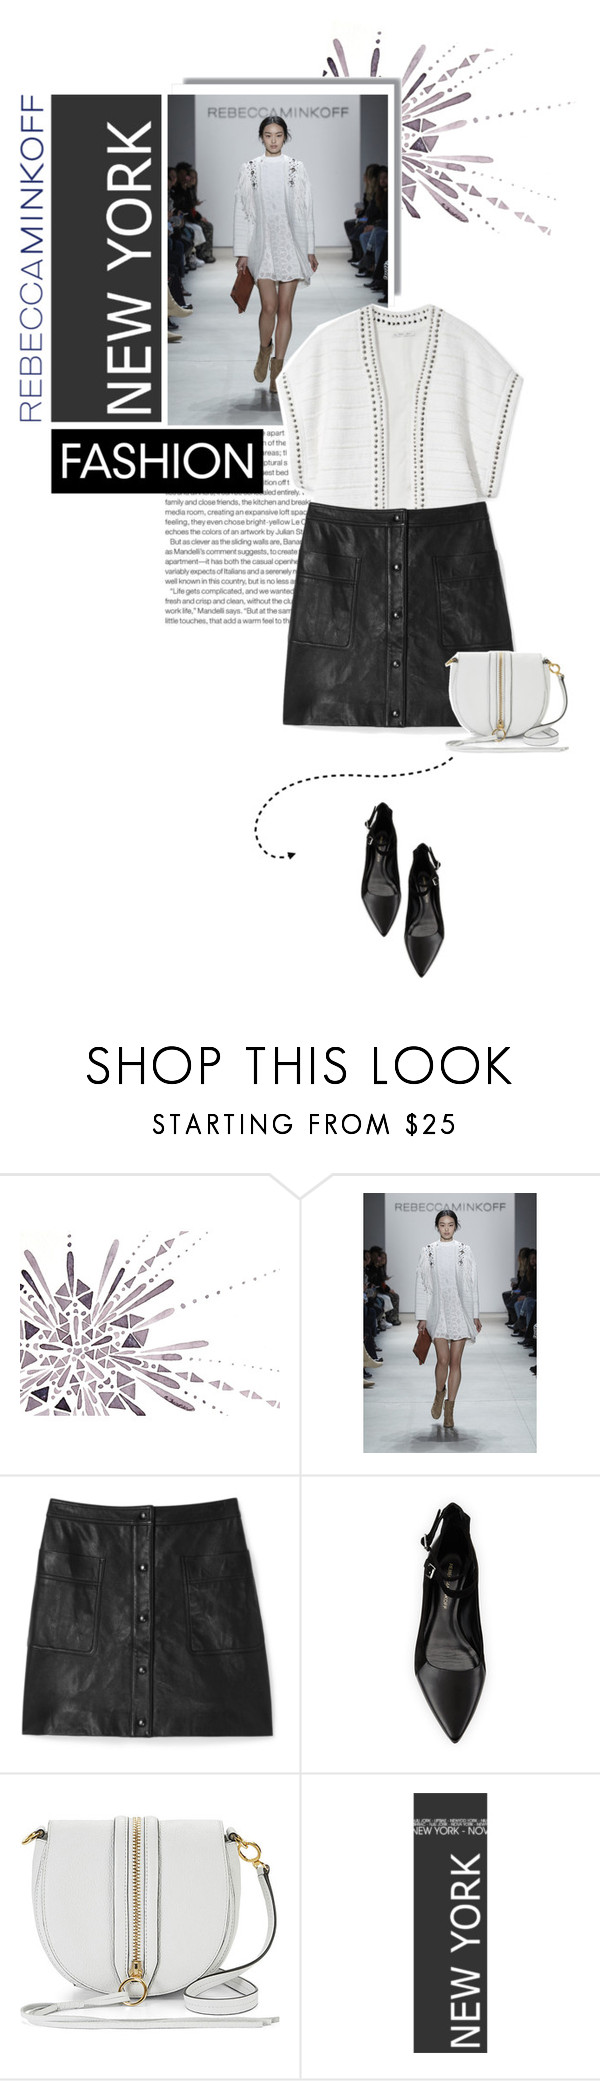 """""""Rm 2"""" by eve-angermayer ❤ liked on Polyvore featuring Elle, Rebecca Minkoff, women's clothing, women, female, woman, misses and juniors"""